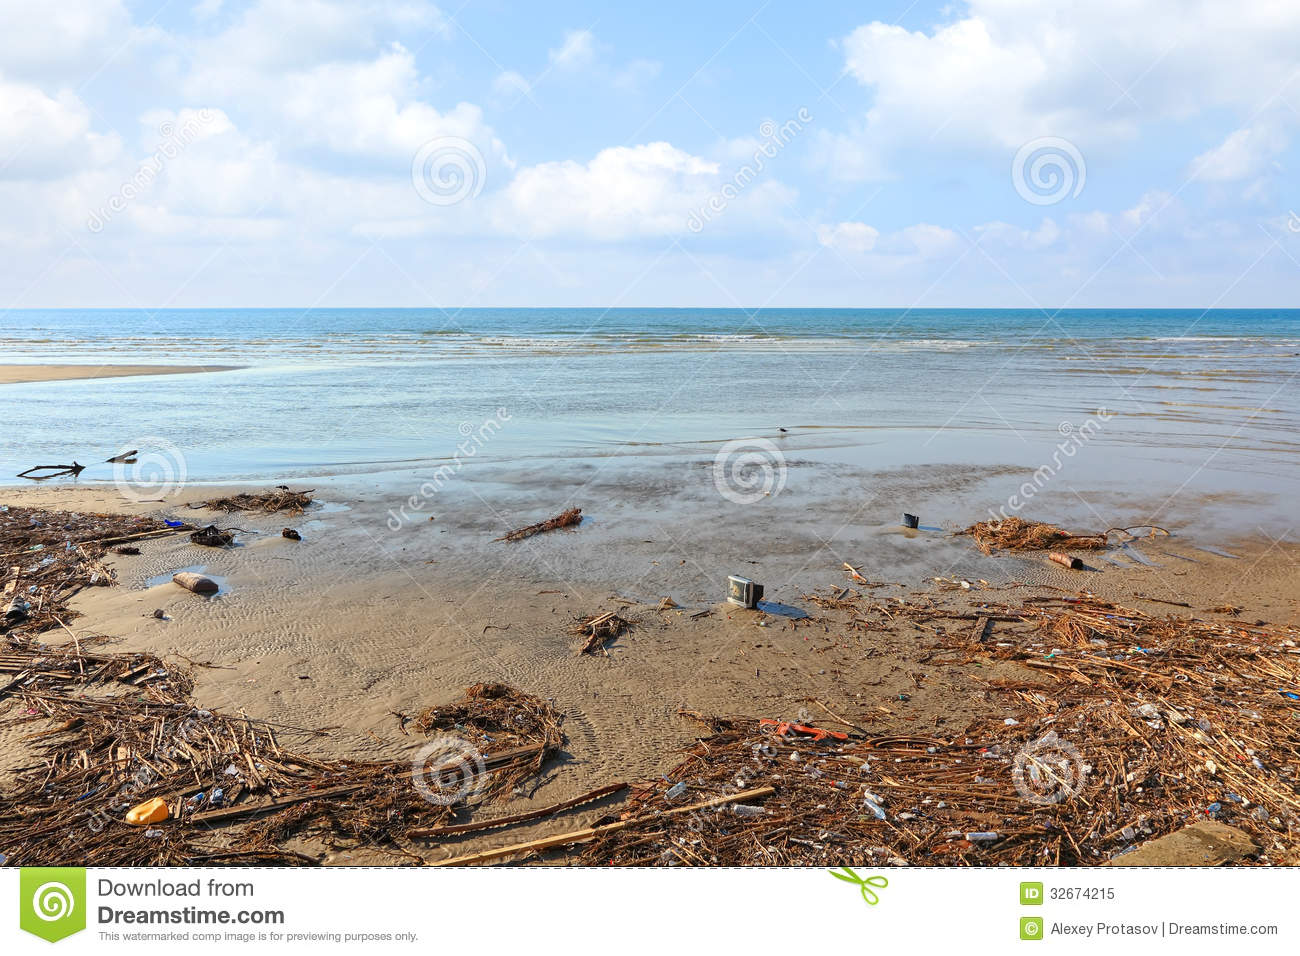 mediterranean sea pollution essay Large quantities of plastic debris are building up in the mediterranean sea sea, the effects of plastic pollution on marine for mediterranean.